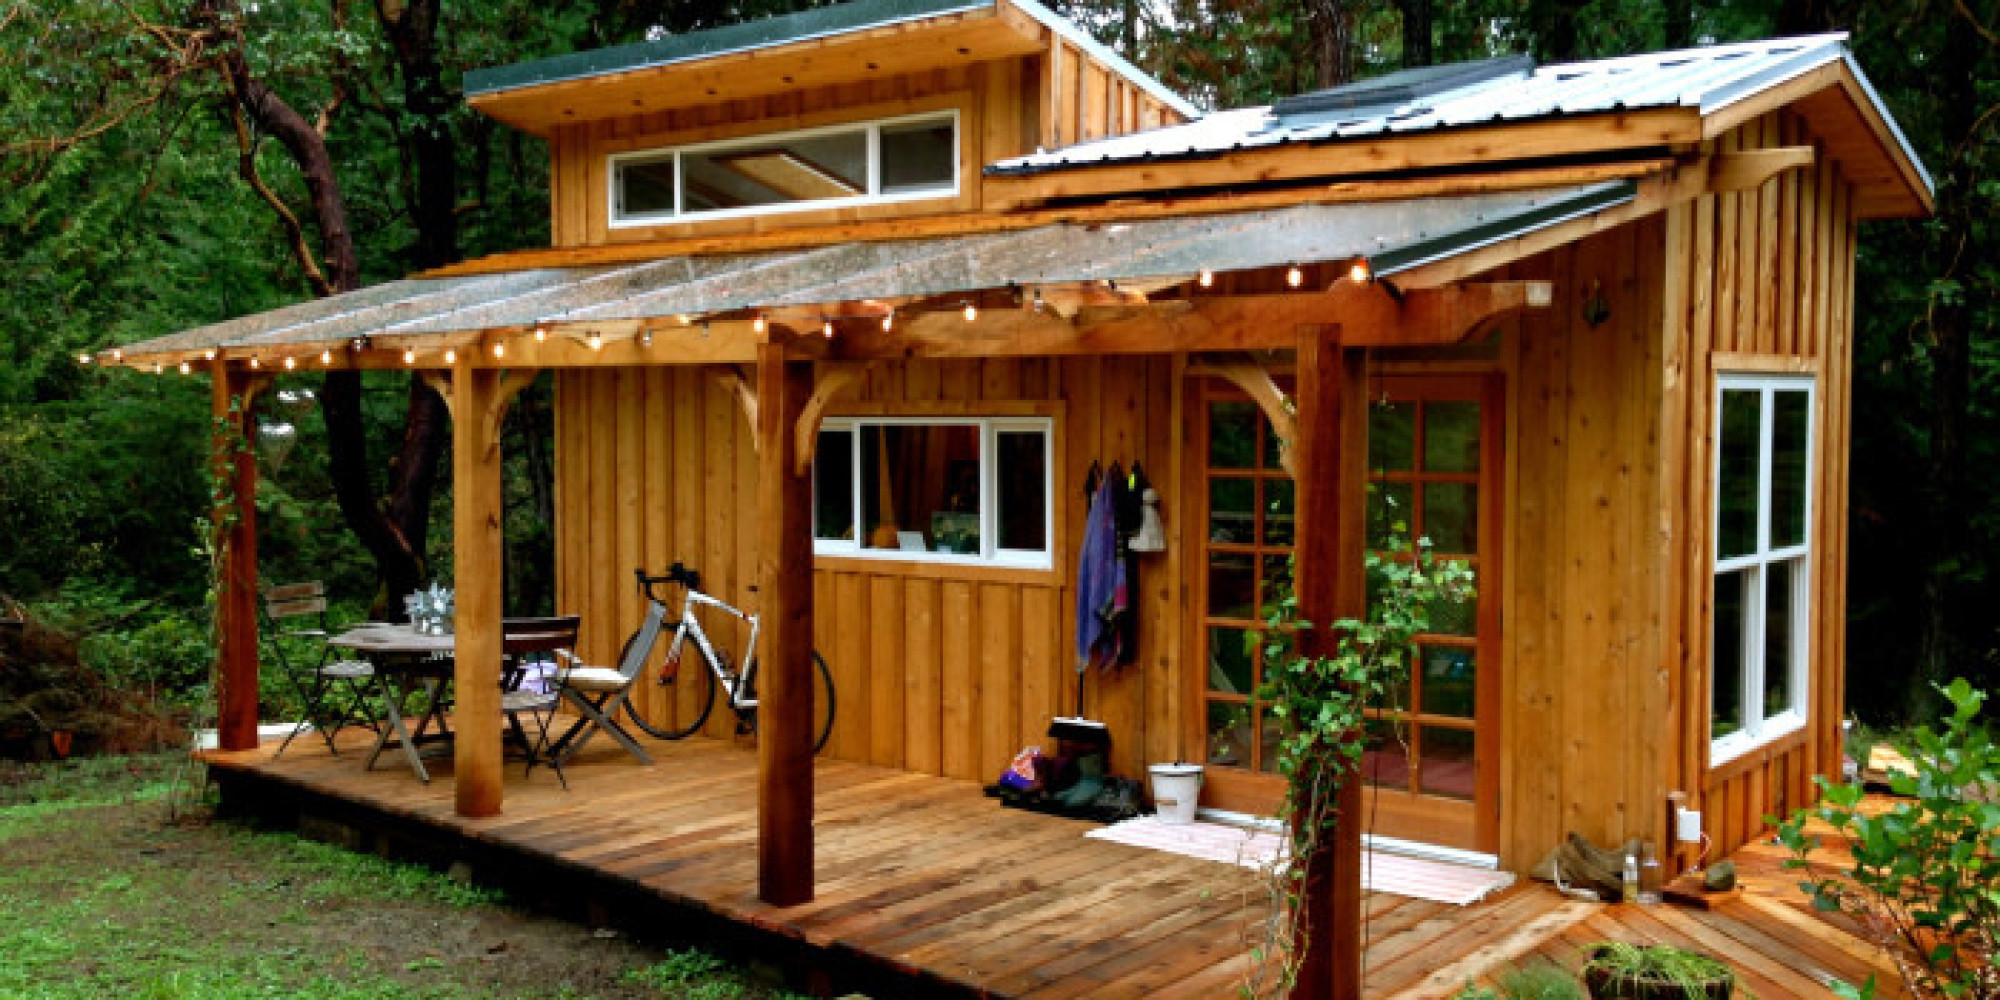 This Enchanting Tiny House On Salt Spring Island Can Be Quite The